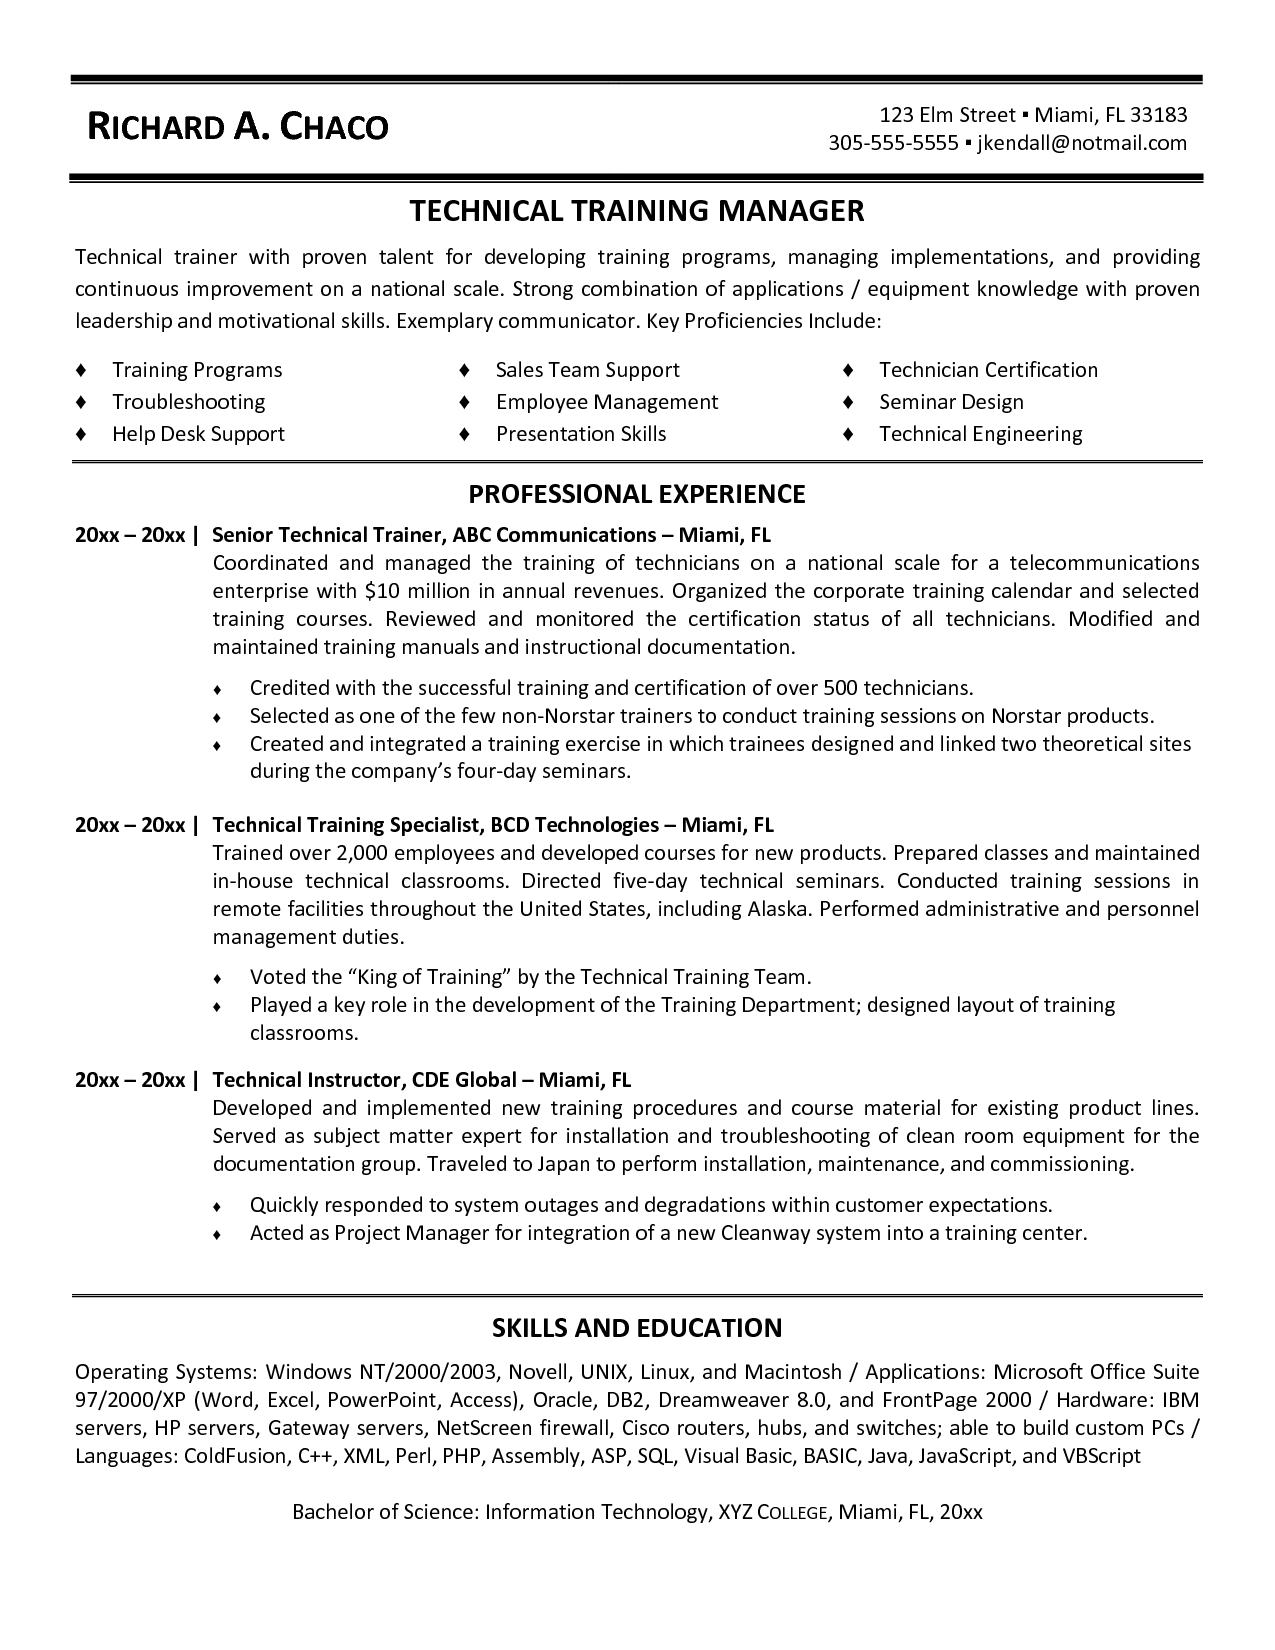 Sample Admin Resume Pdf Systems Administrator System Samples Sql